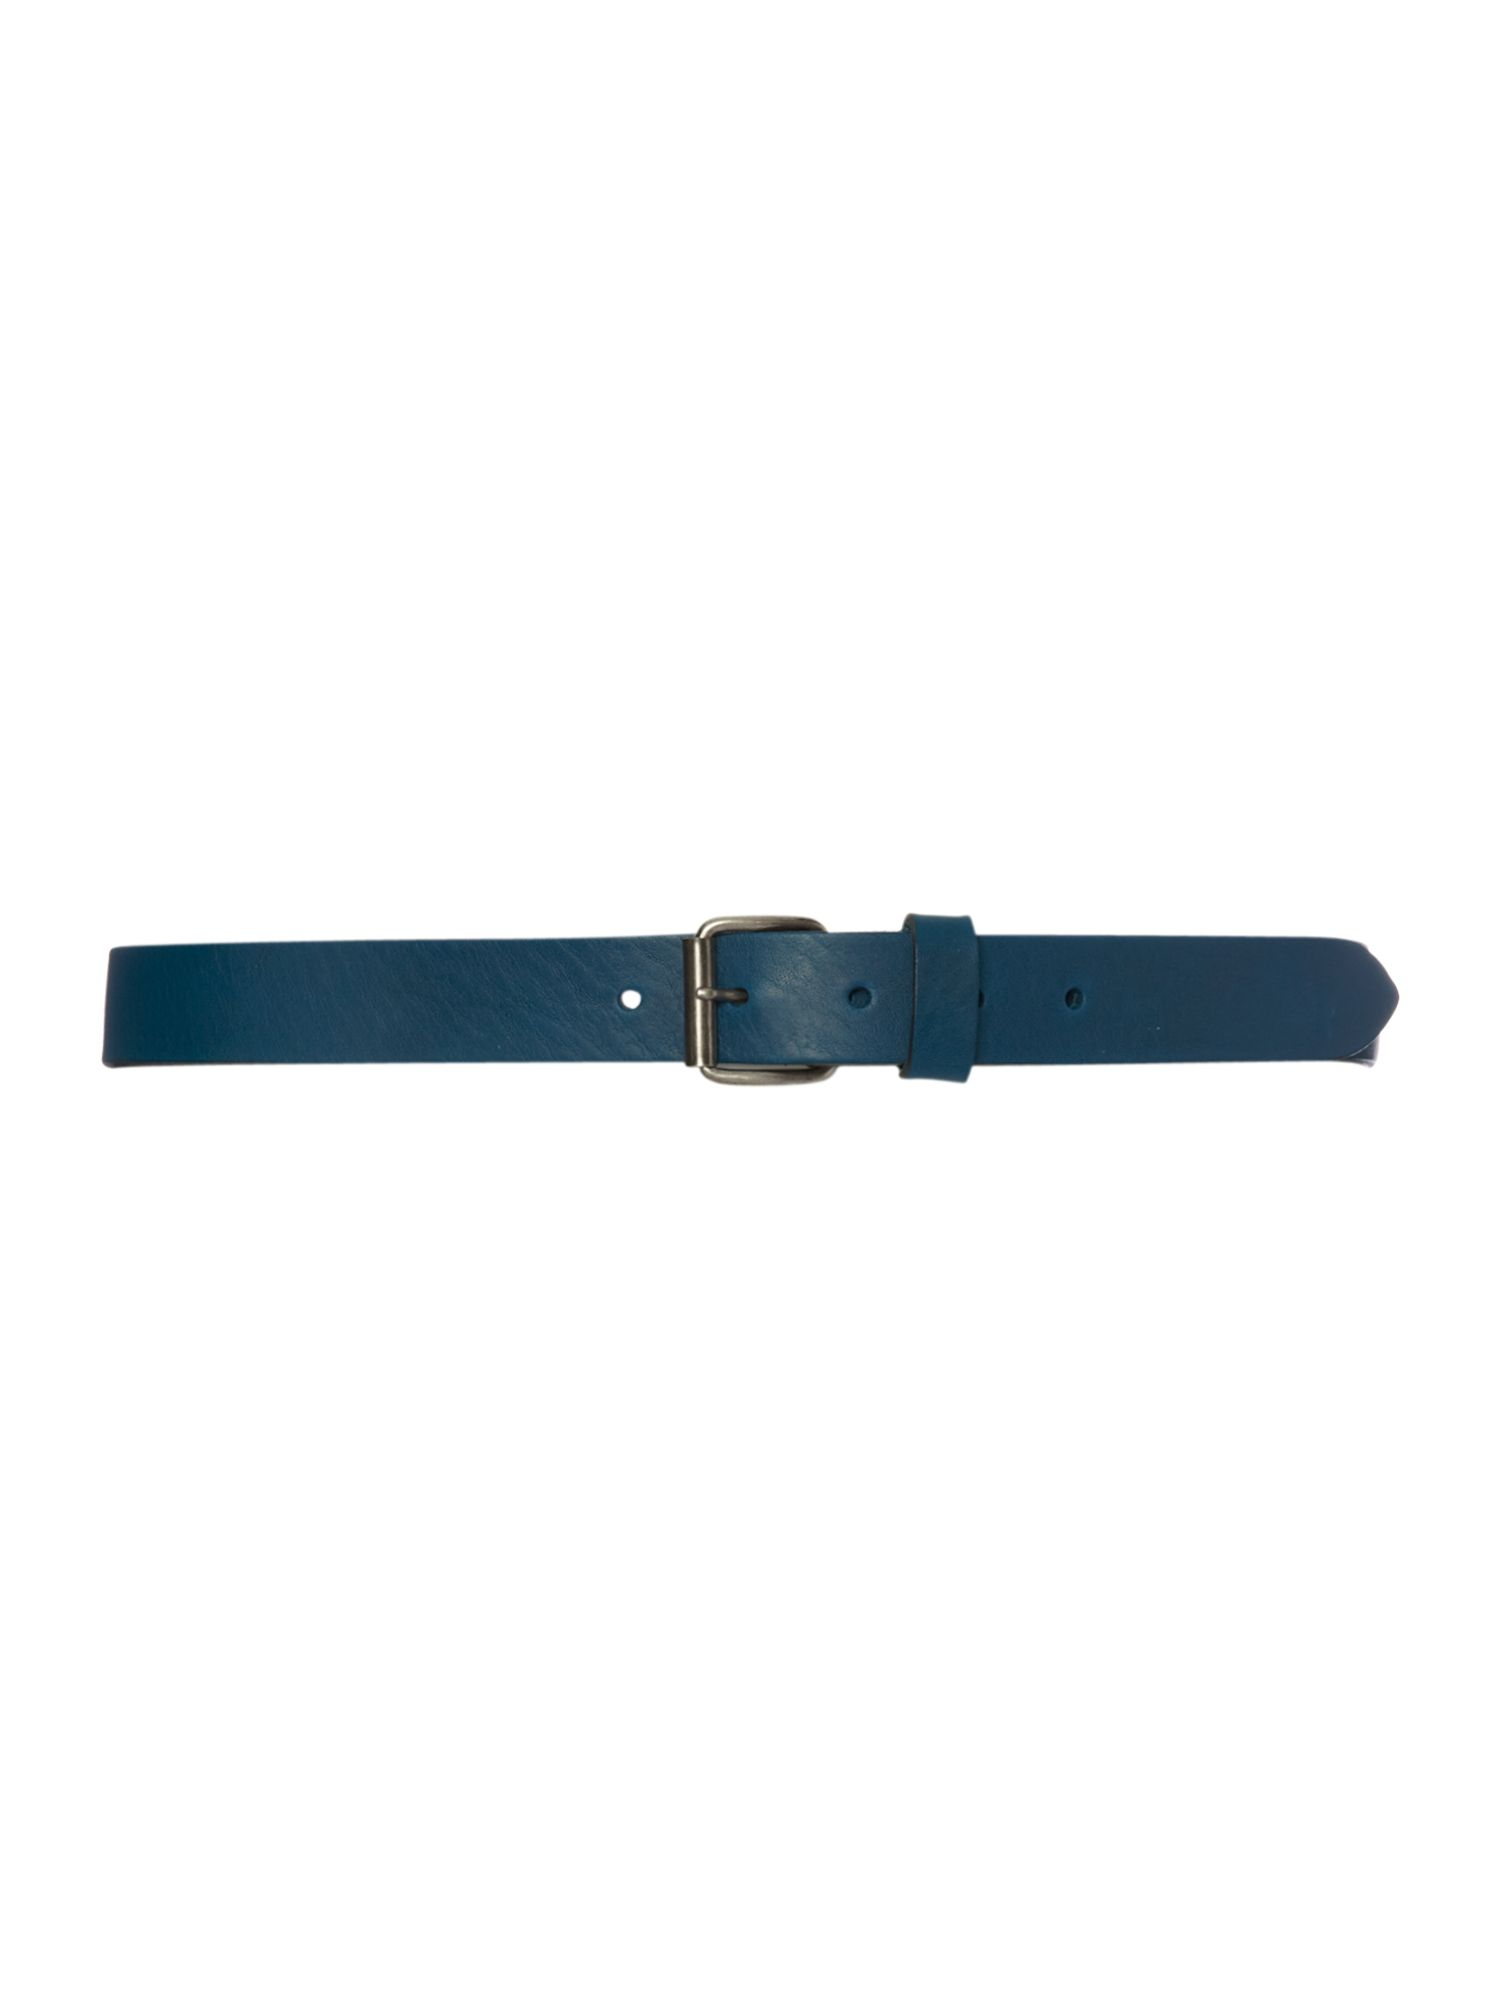 Soft leather teal belt